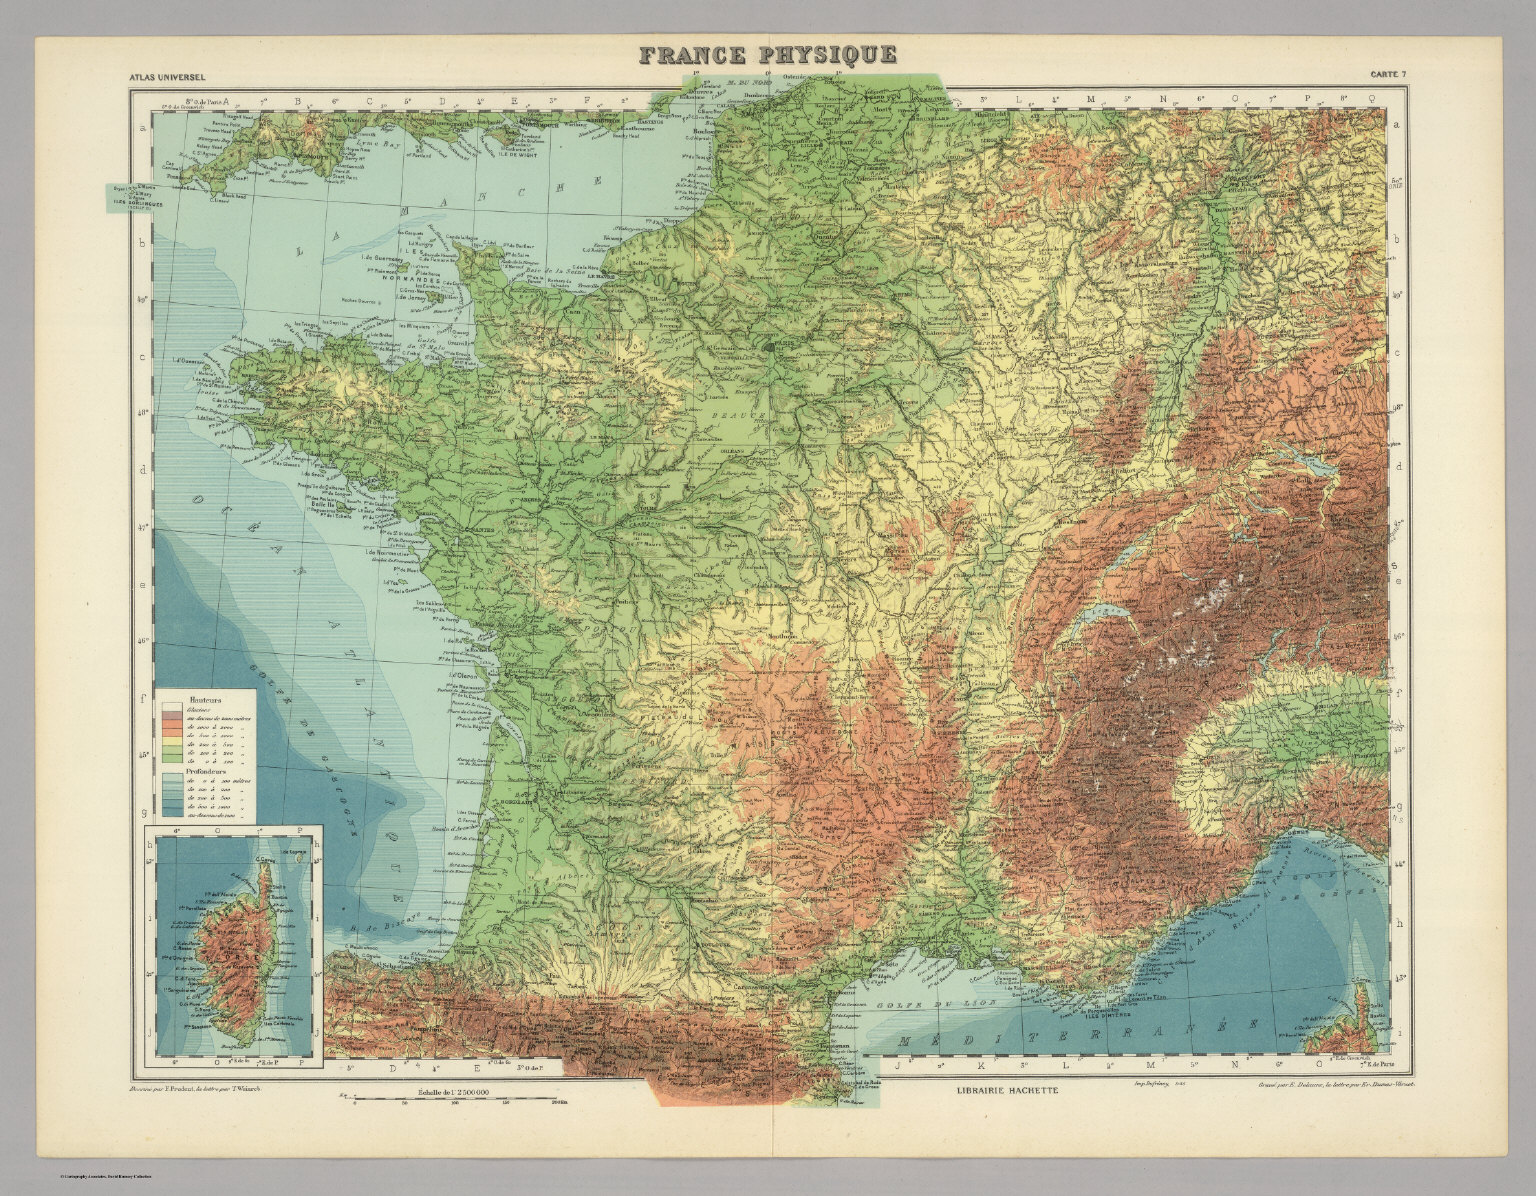 La France Map.France Physique David Rumsey Historical Map Collection